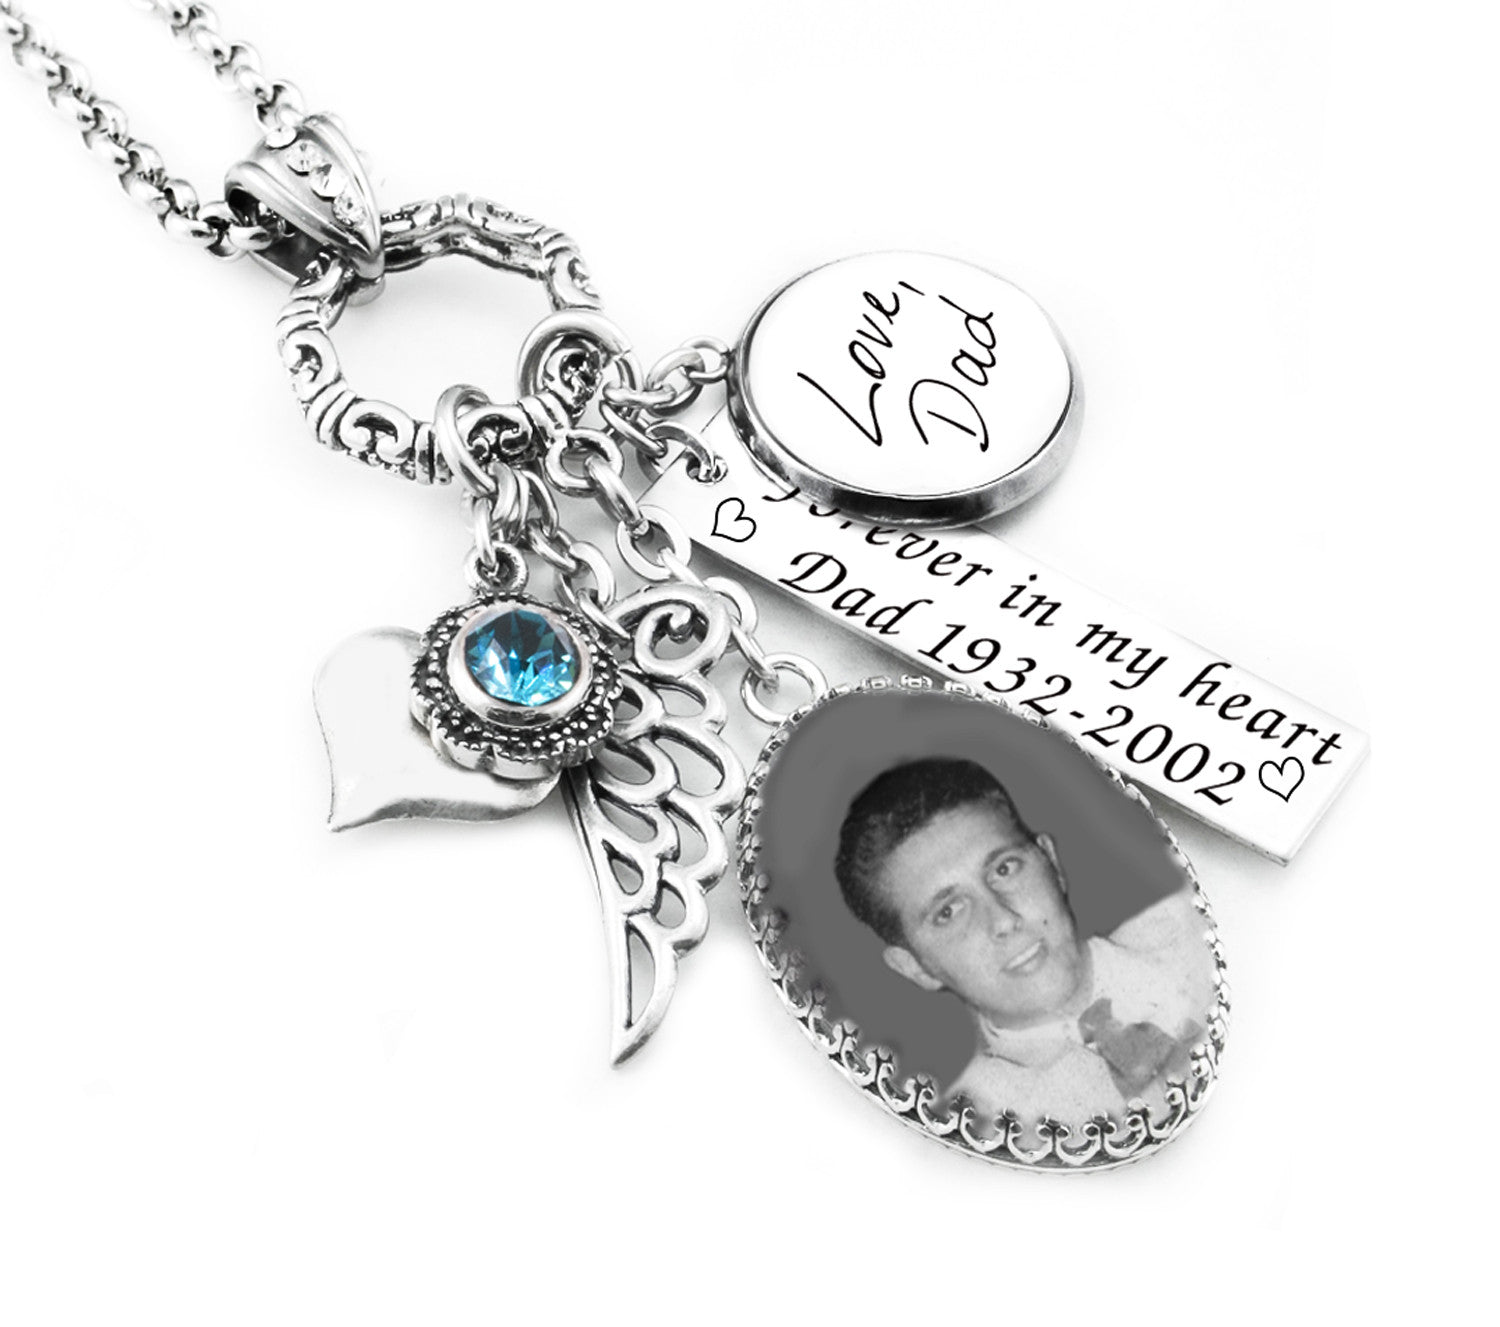 memorial uk keepsake co necklace urn cremation amazon heart dp ash grandad jewellery pendant